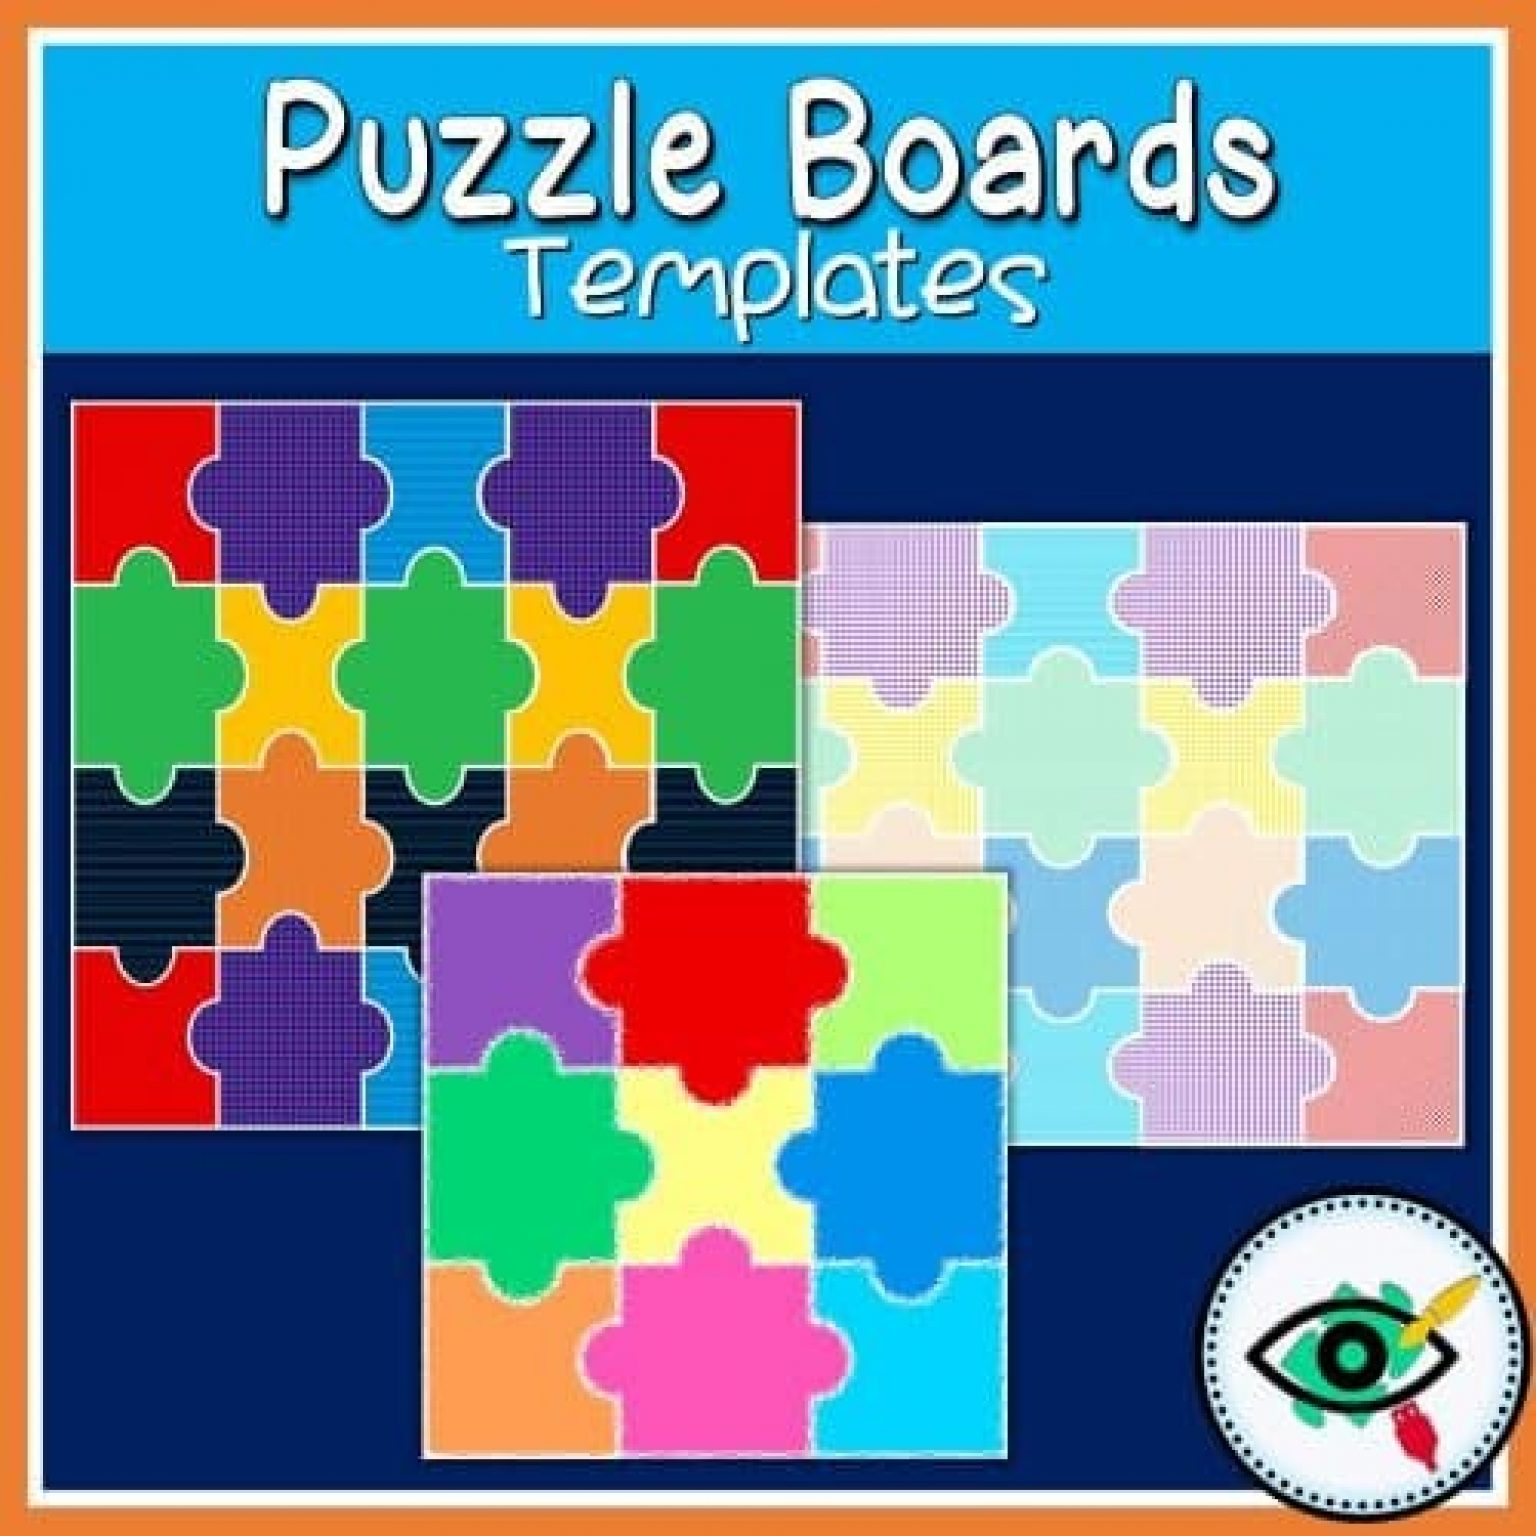 puzzle-boards-templates-title3